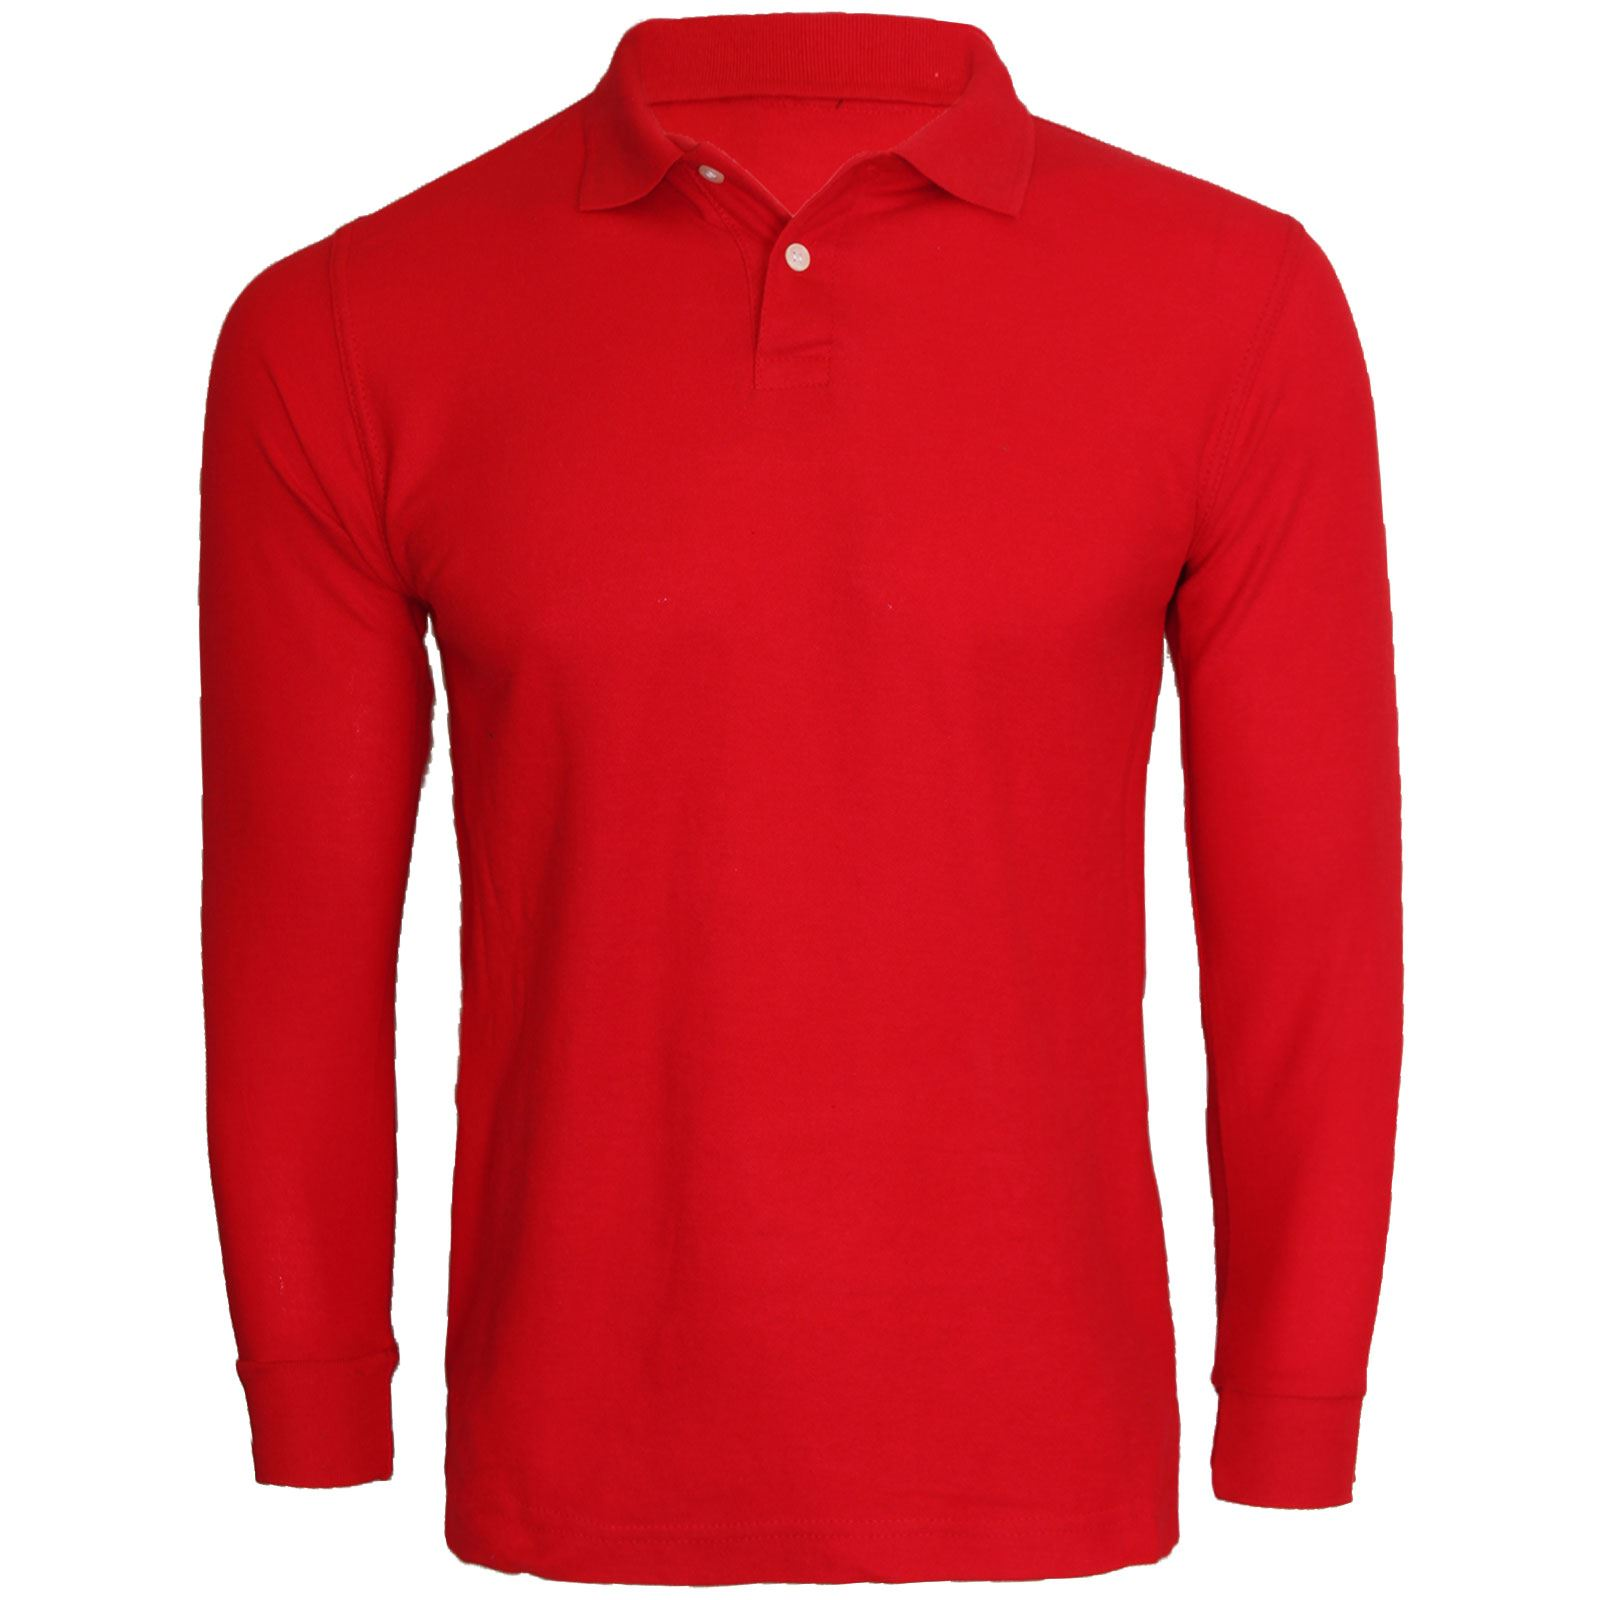 NEW MENS LONG SLEEVE CASUAL WARM WINTER POLO SHIRT PIQUE TOP PLAIN ...